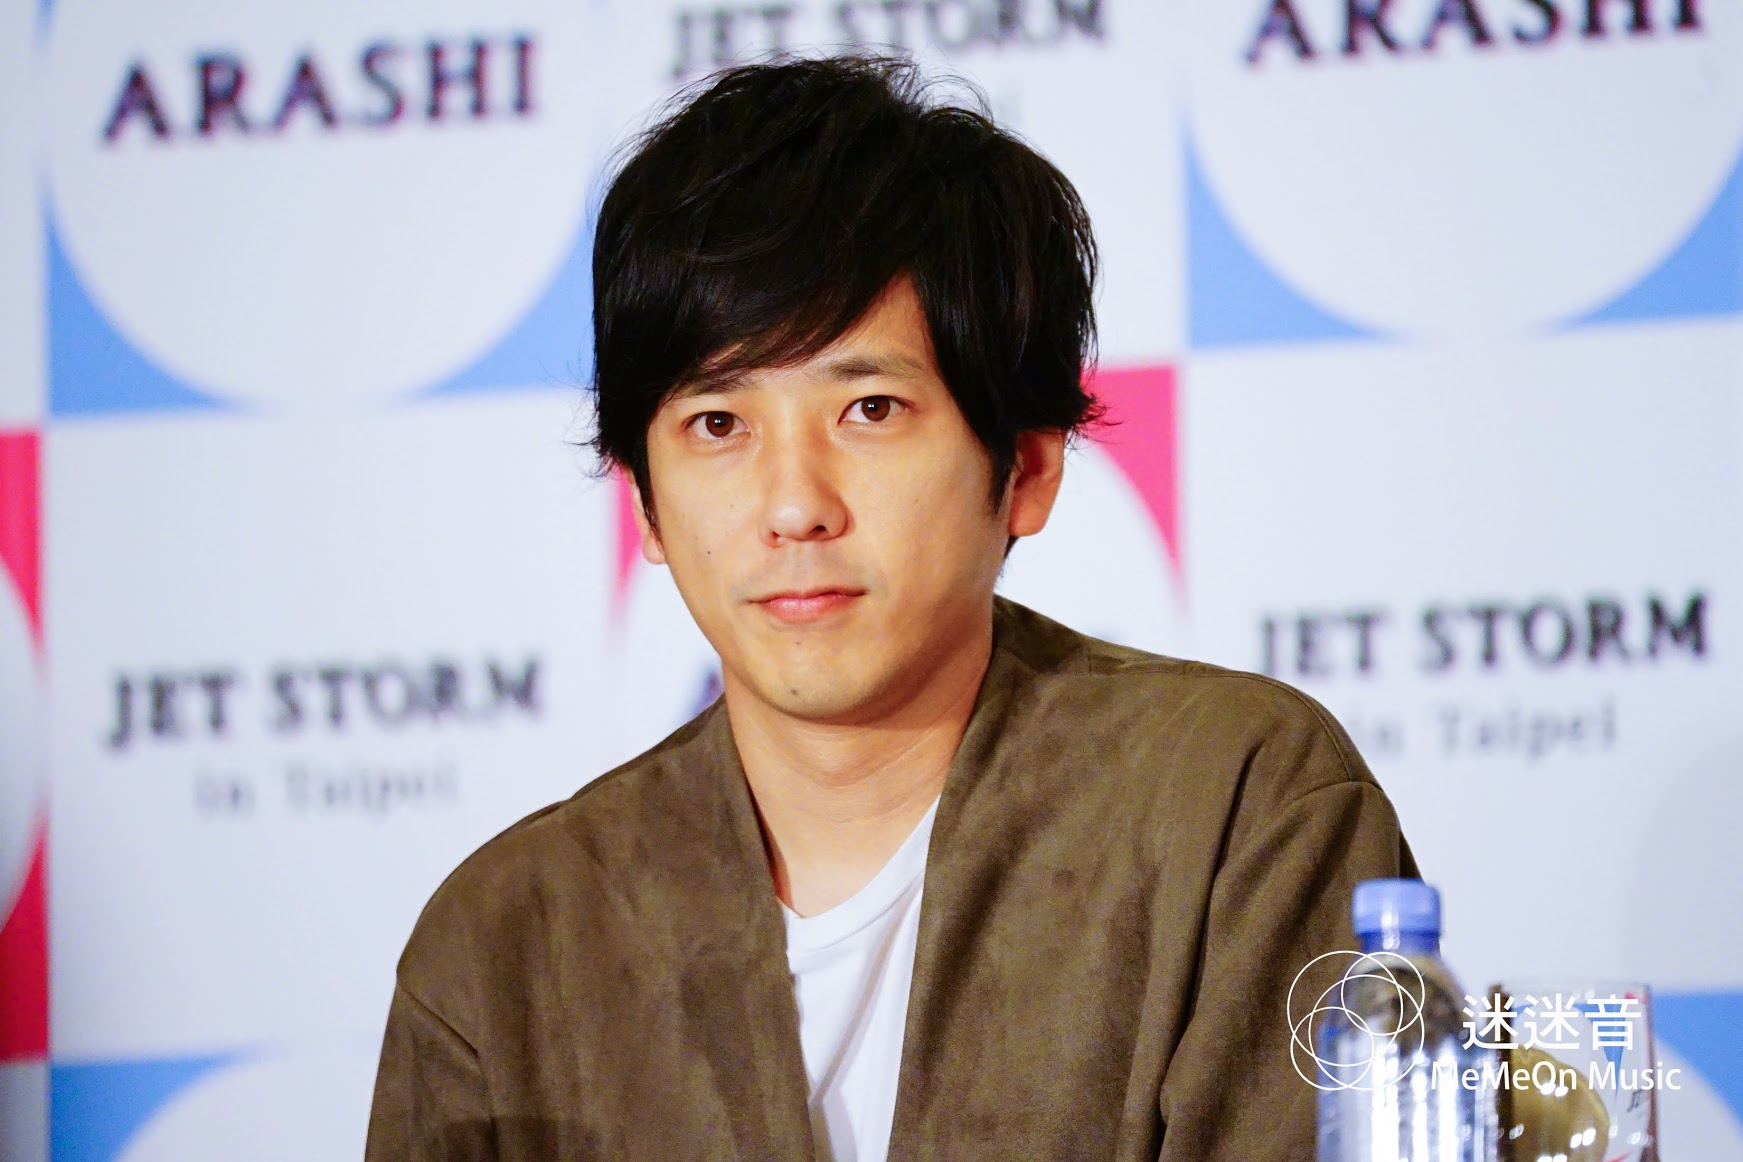 Arashi's Ninomiya Kazunari Announces Marriage